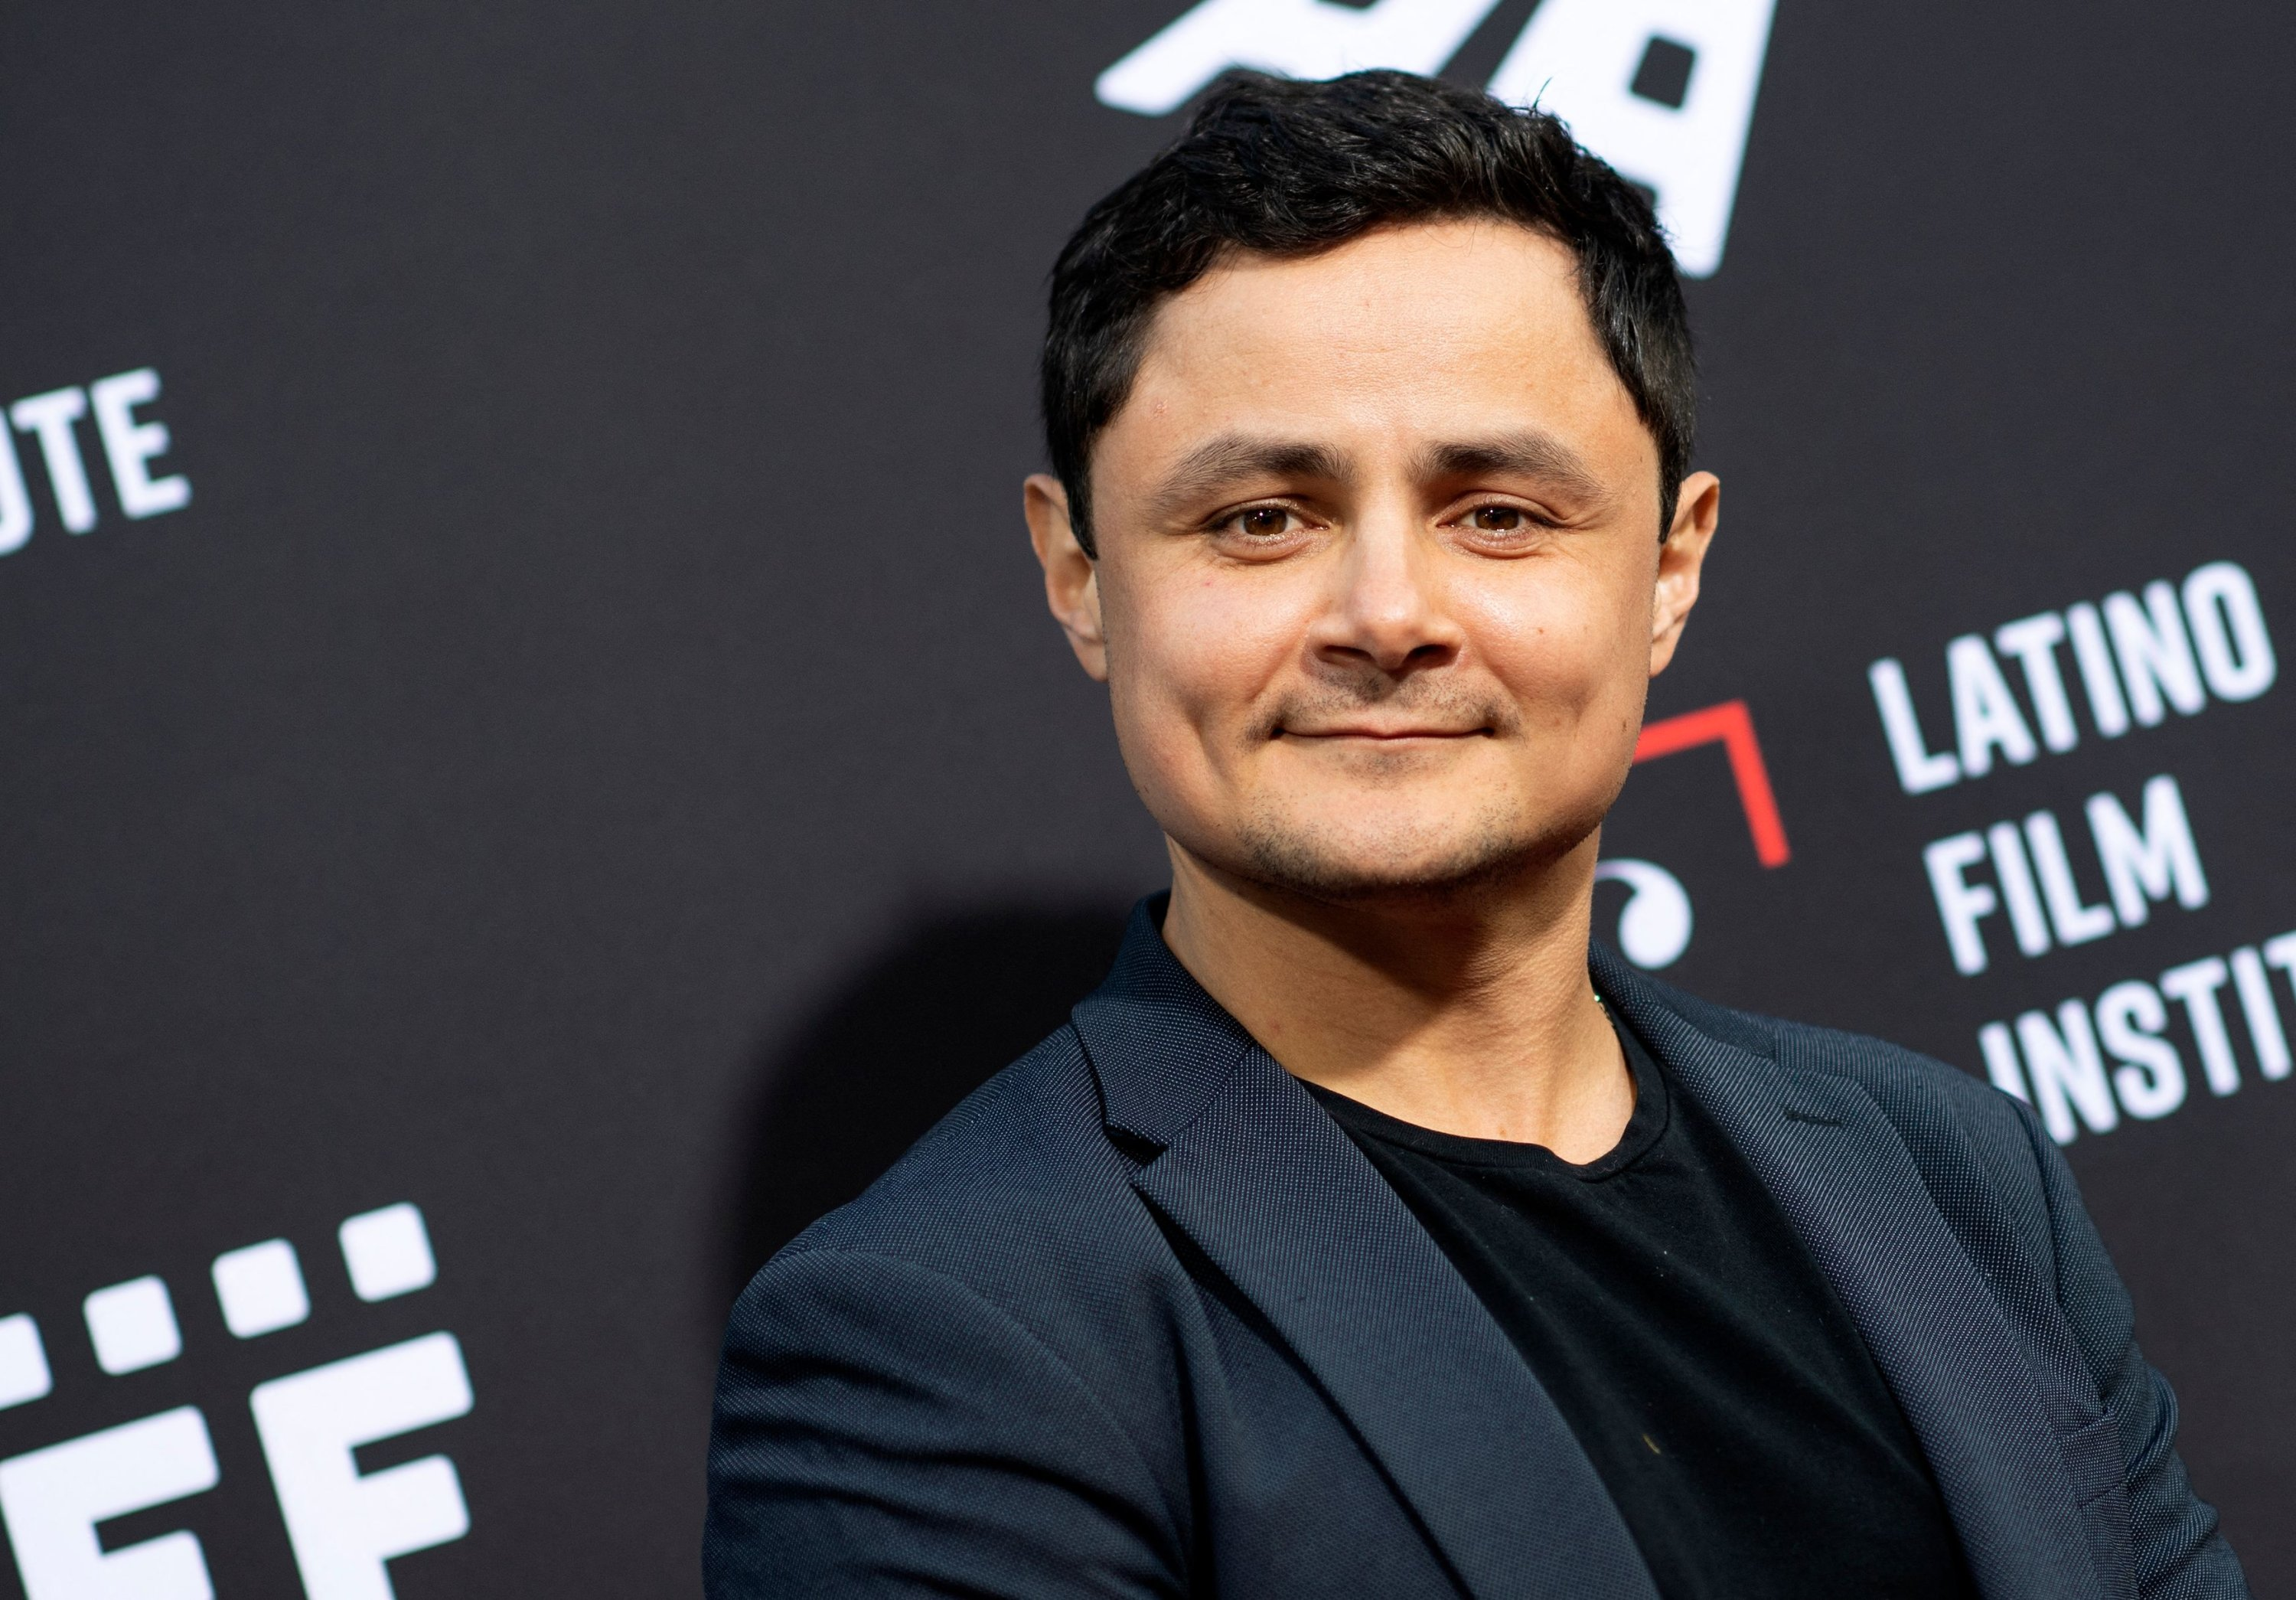 Actor Arturo Castro attends the Los Angeles Latino International Film Festival (LALIFF) special preview screening of 'In The Heights' at the TCL Chinese Theater in Hollywood, California, U.S., June 4, 2021. (AFP Photo)